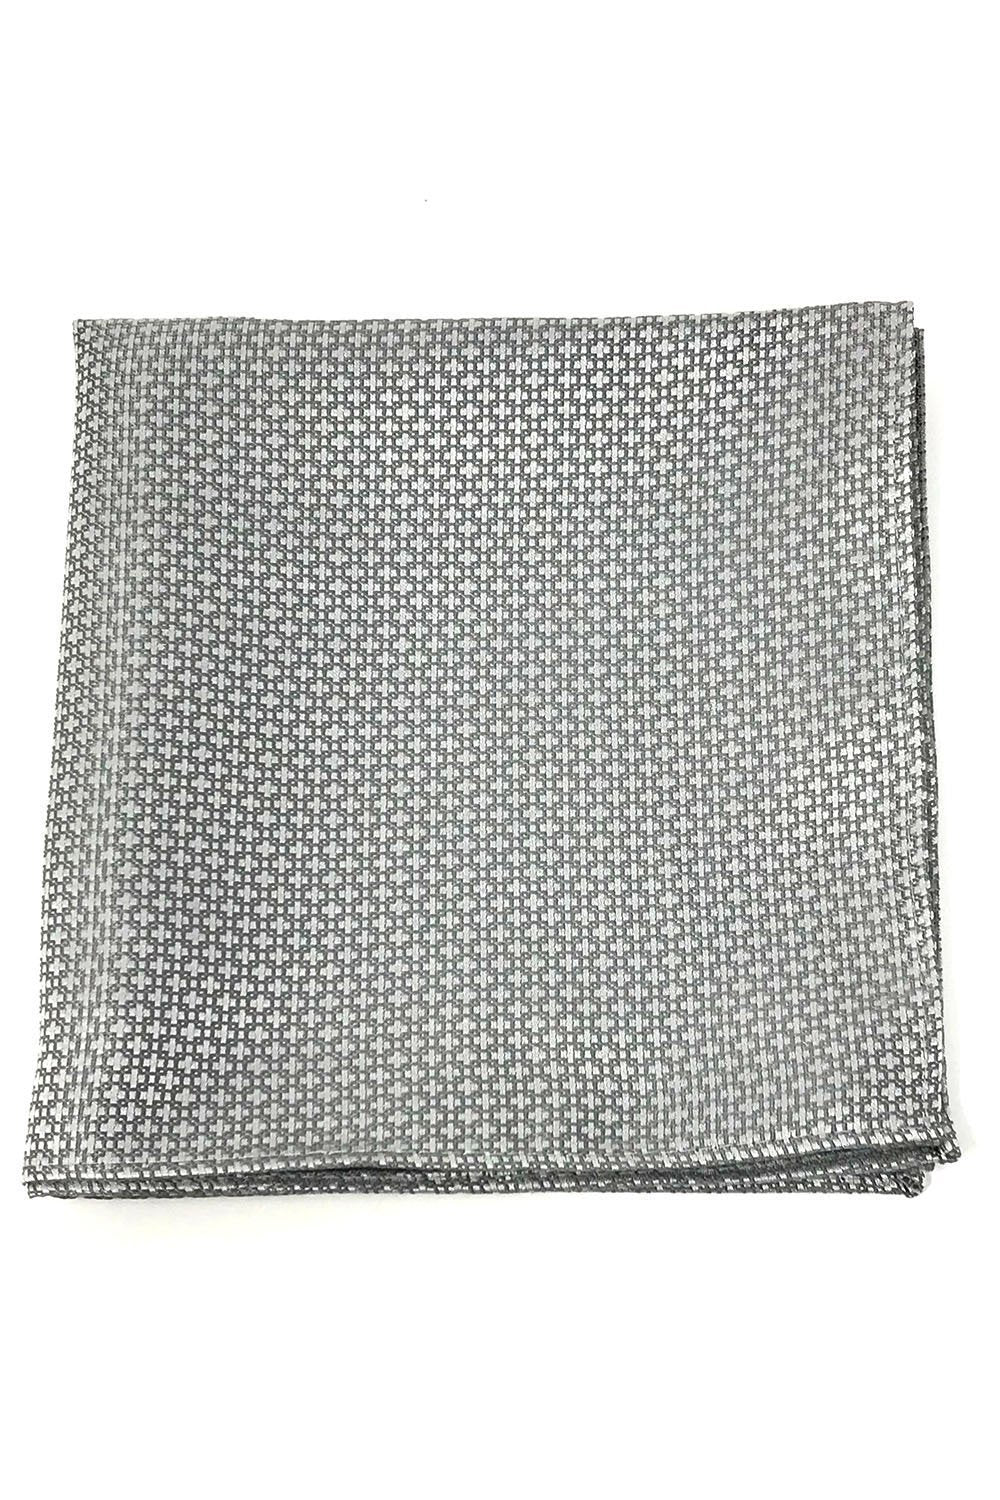 Pañuelo Regal Grey Caballero